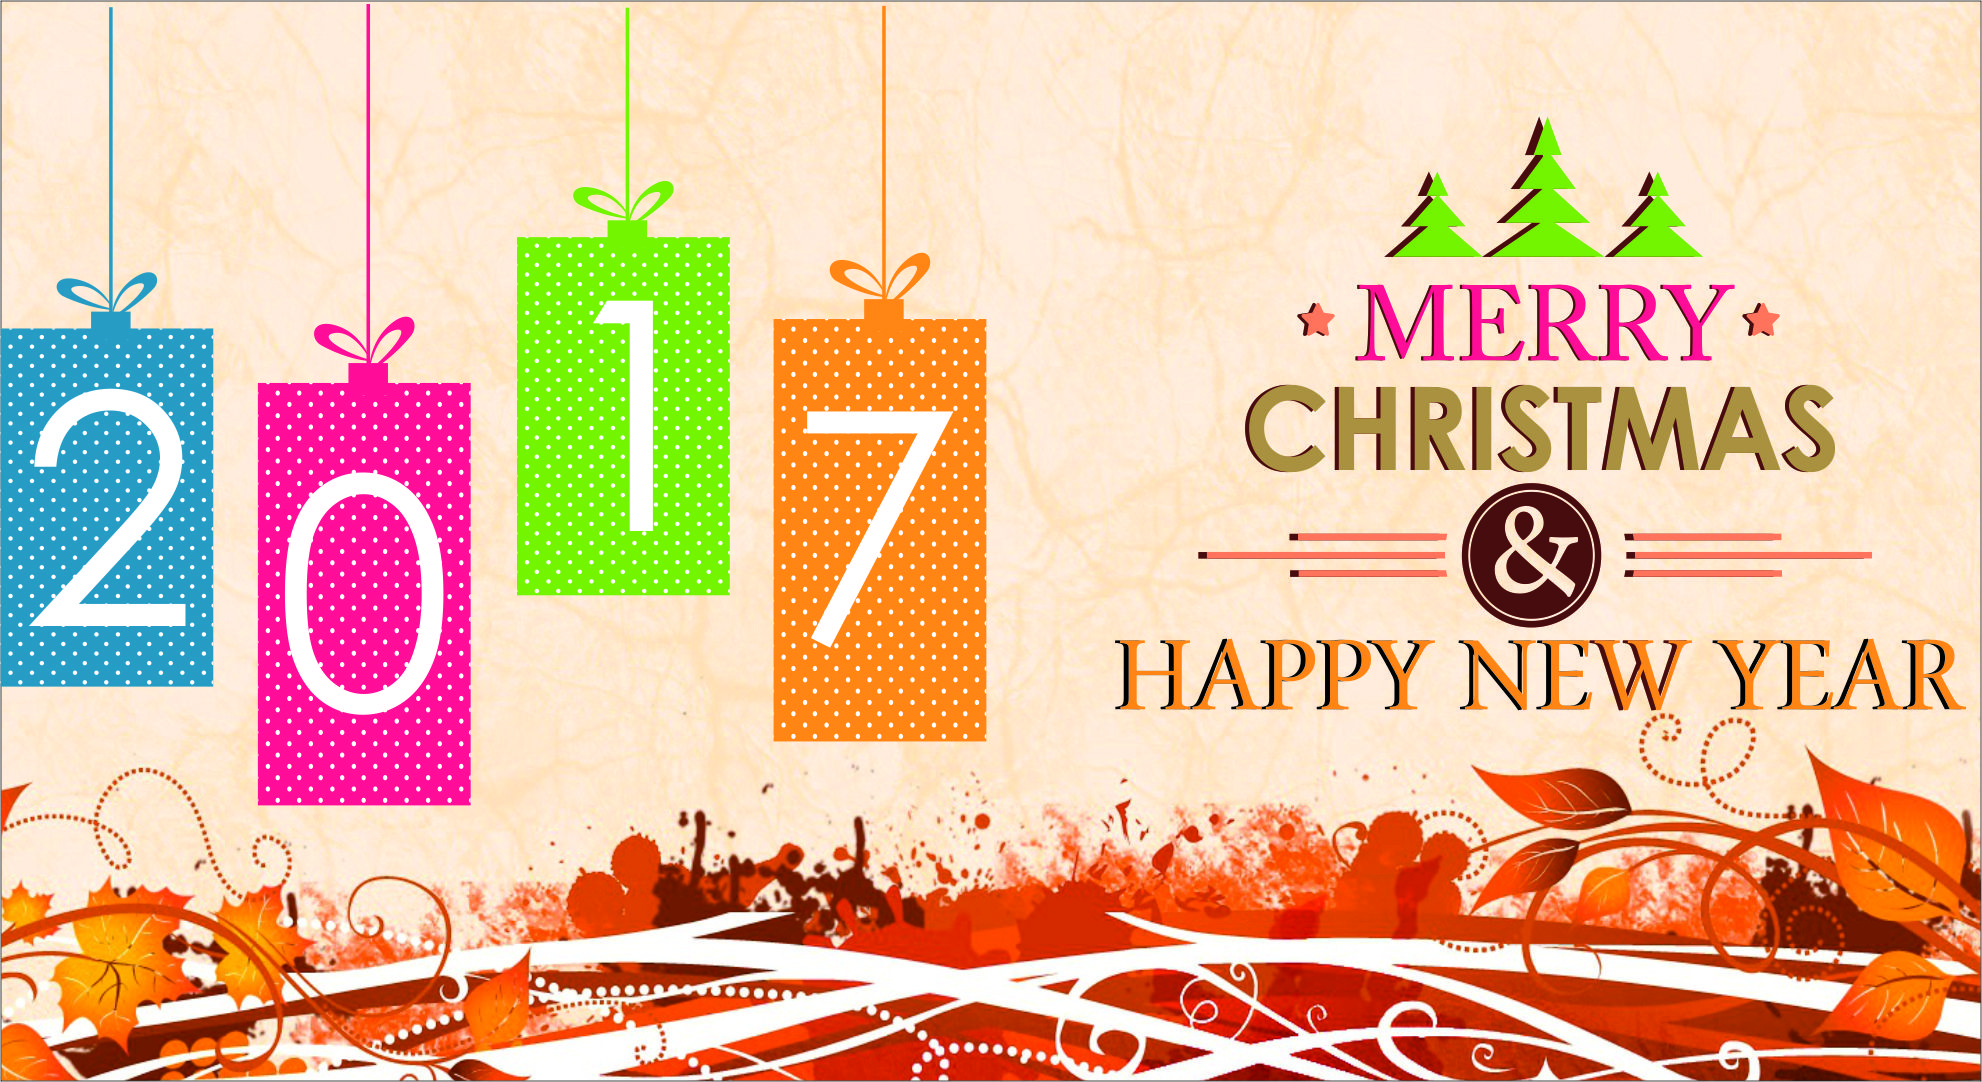 2017 Happy New Year Christmas Wallpaper Hd Quotes Square